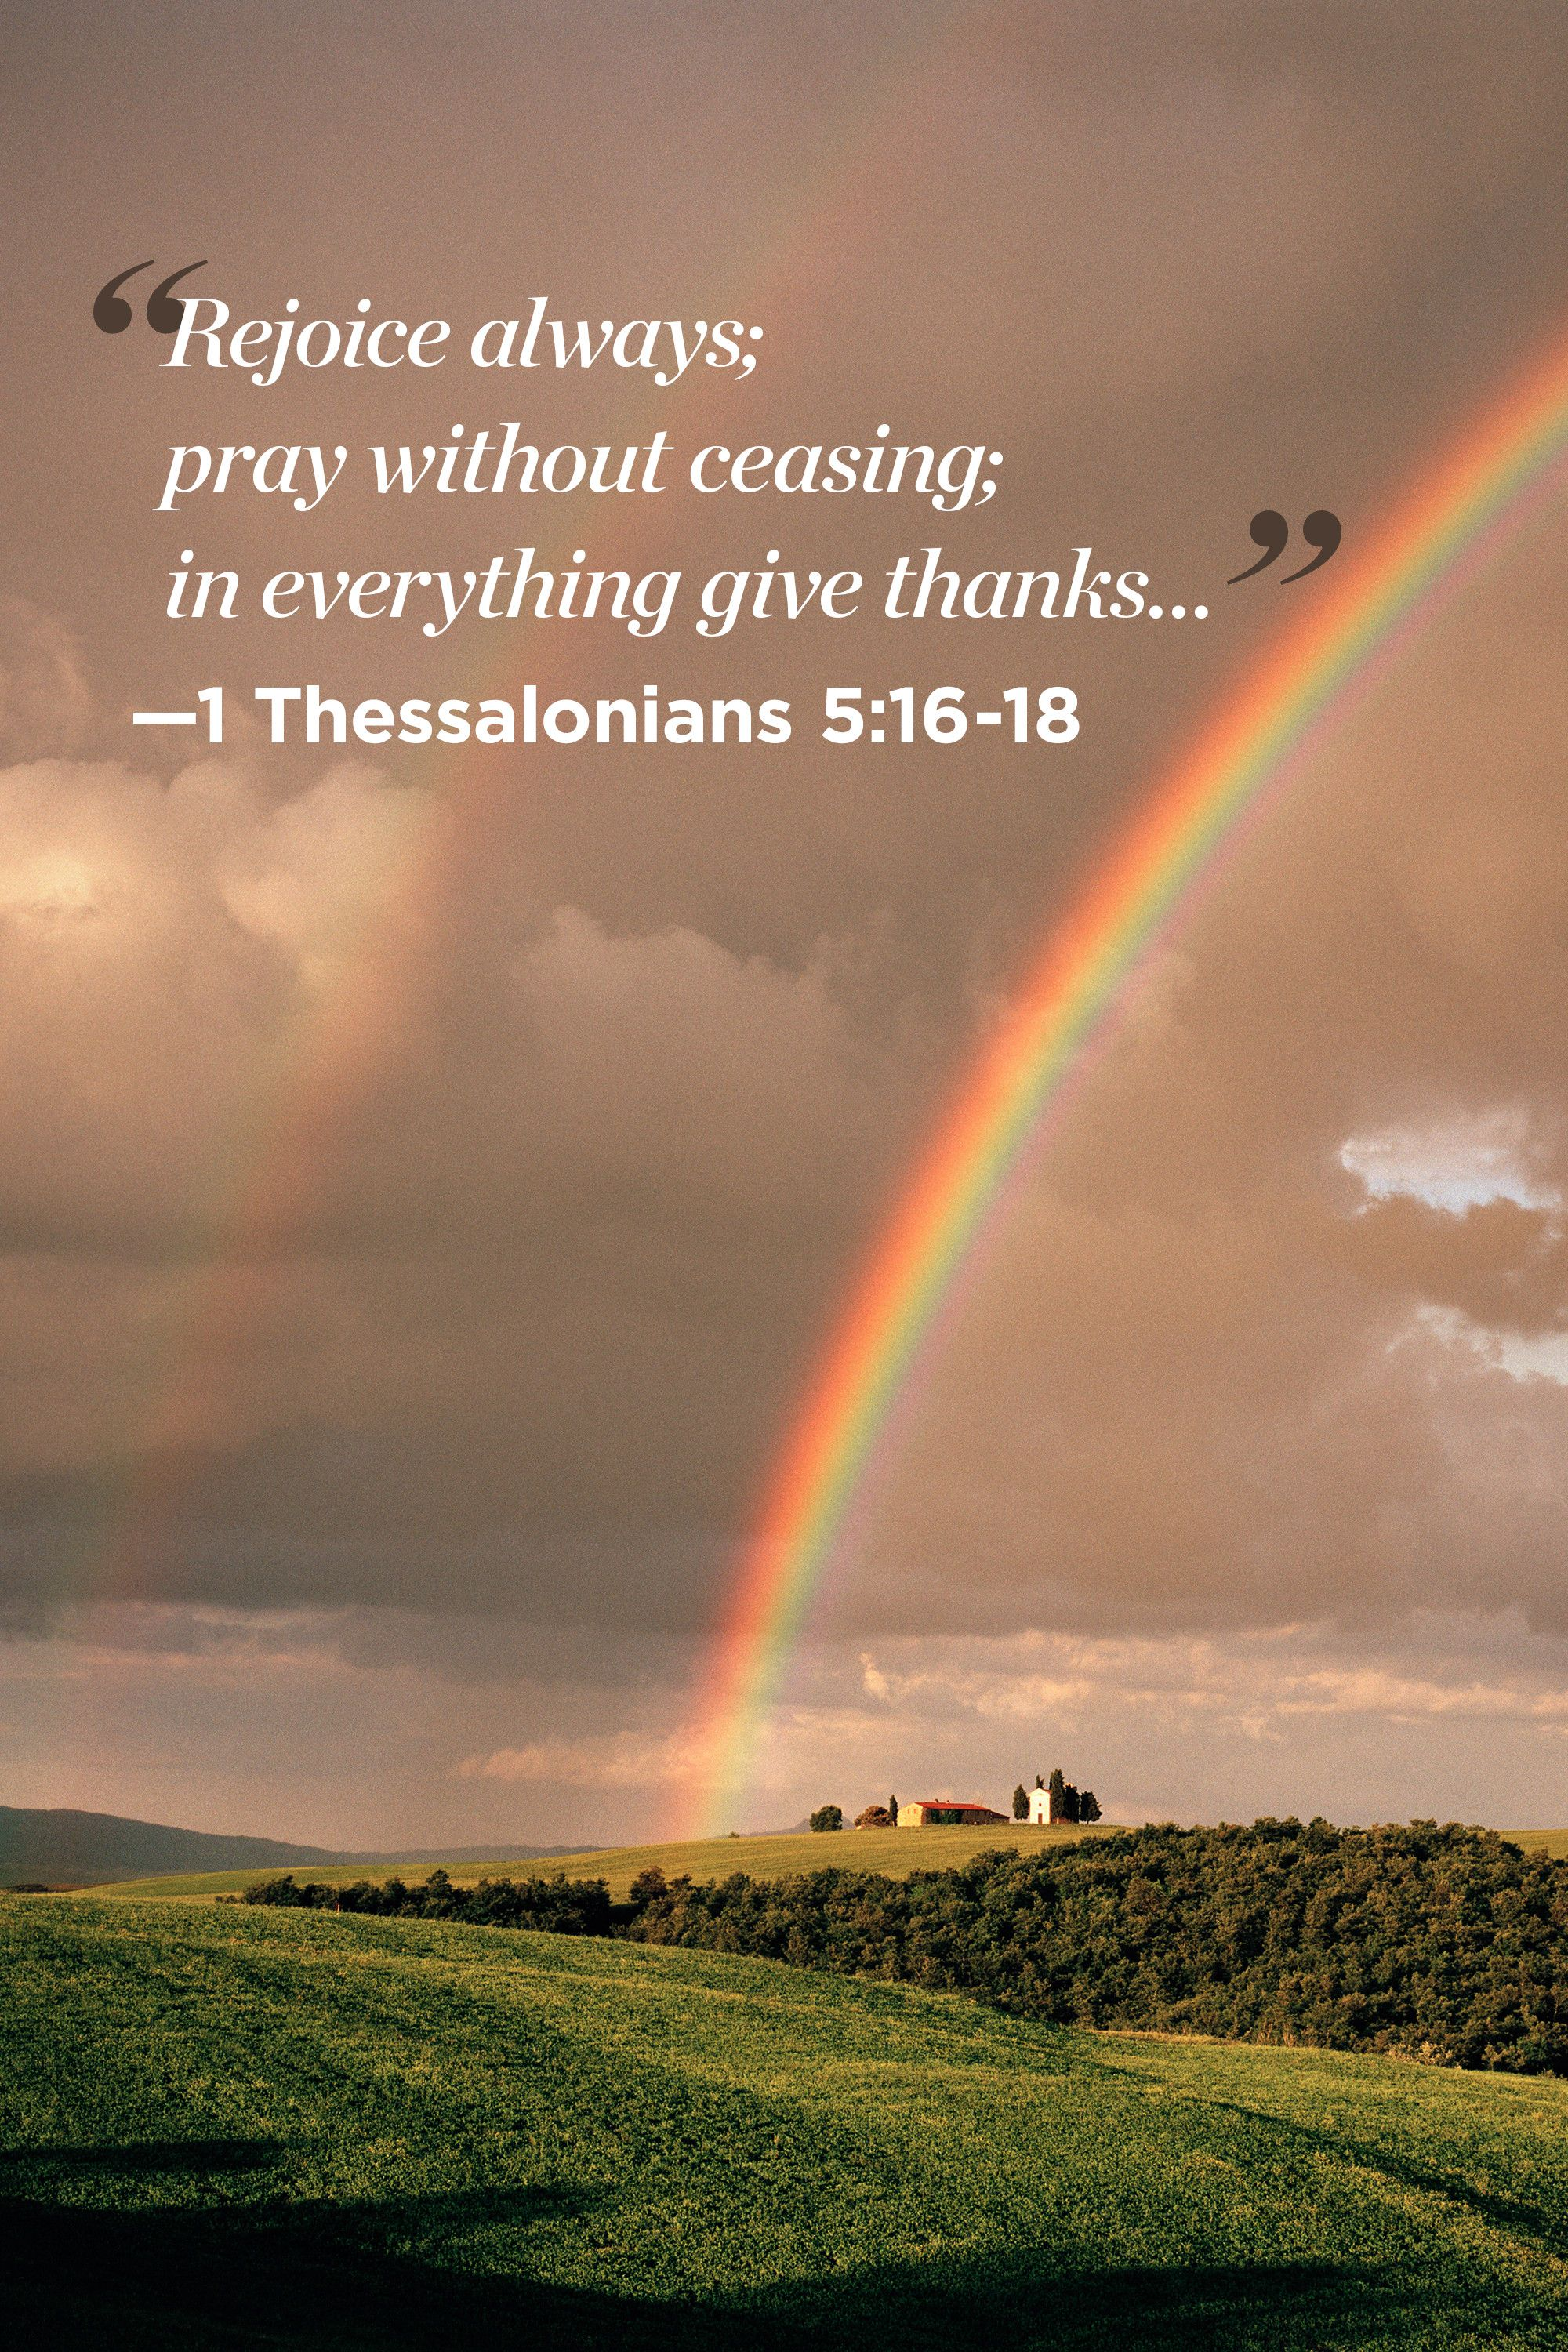 https://hips.hearstapps.com/wdy.h-cdn.co/assets/16/01/20160104-verse_1thessalonians5_1.jpg